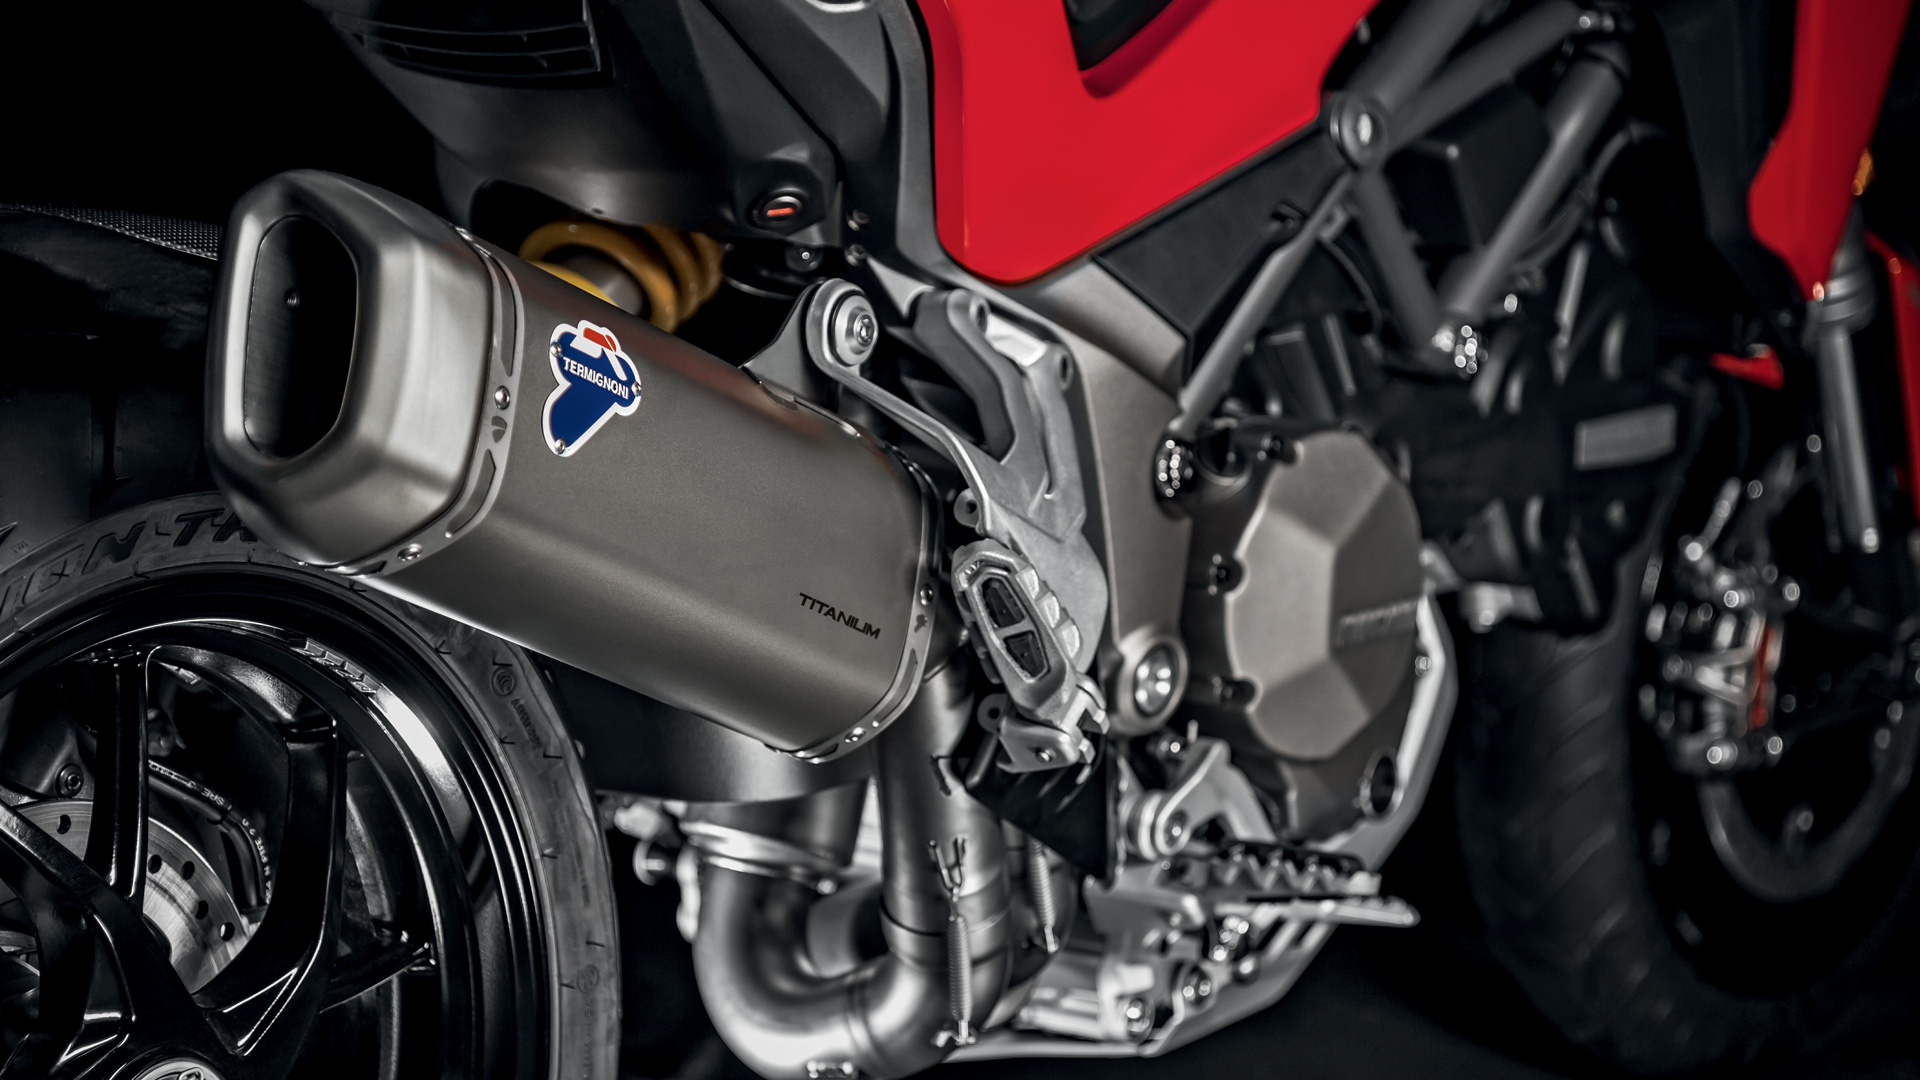 Customise your new Multistrada 1260 with Ducati Performance accessory packs